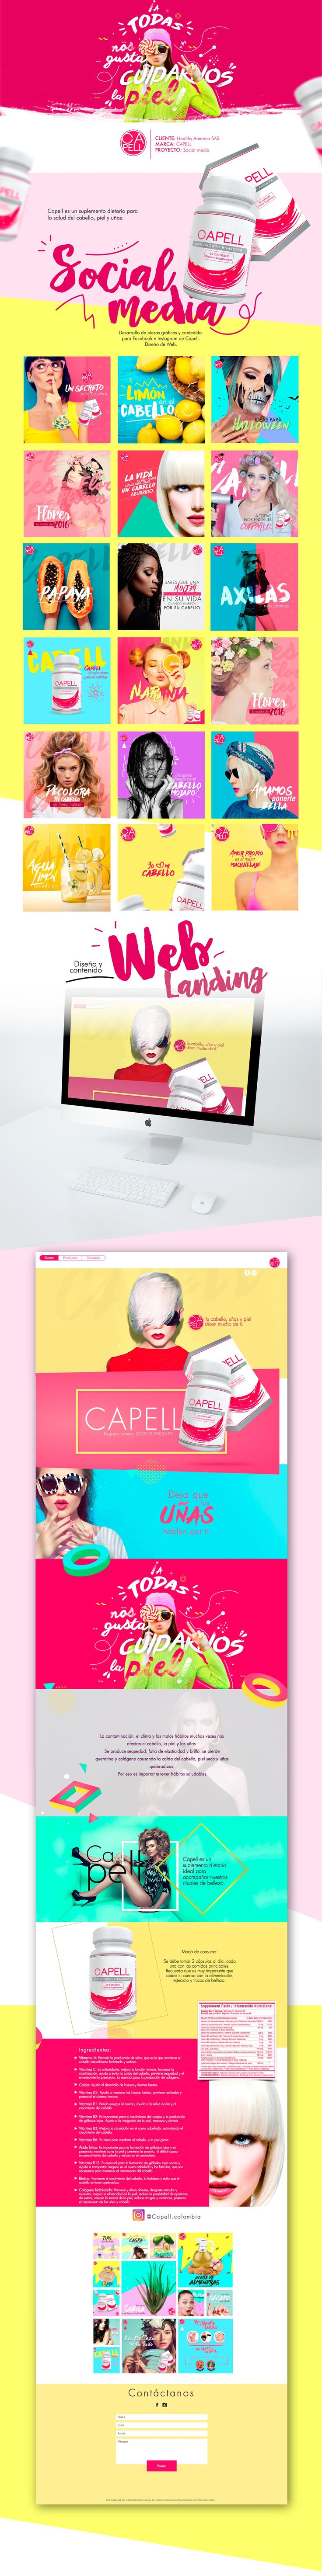 Capell Skin Hair and Nails - Social media & Design on Behance